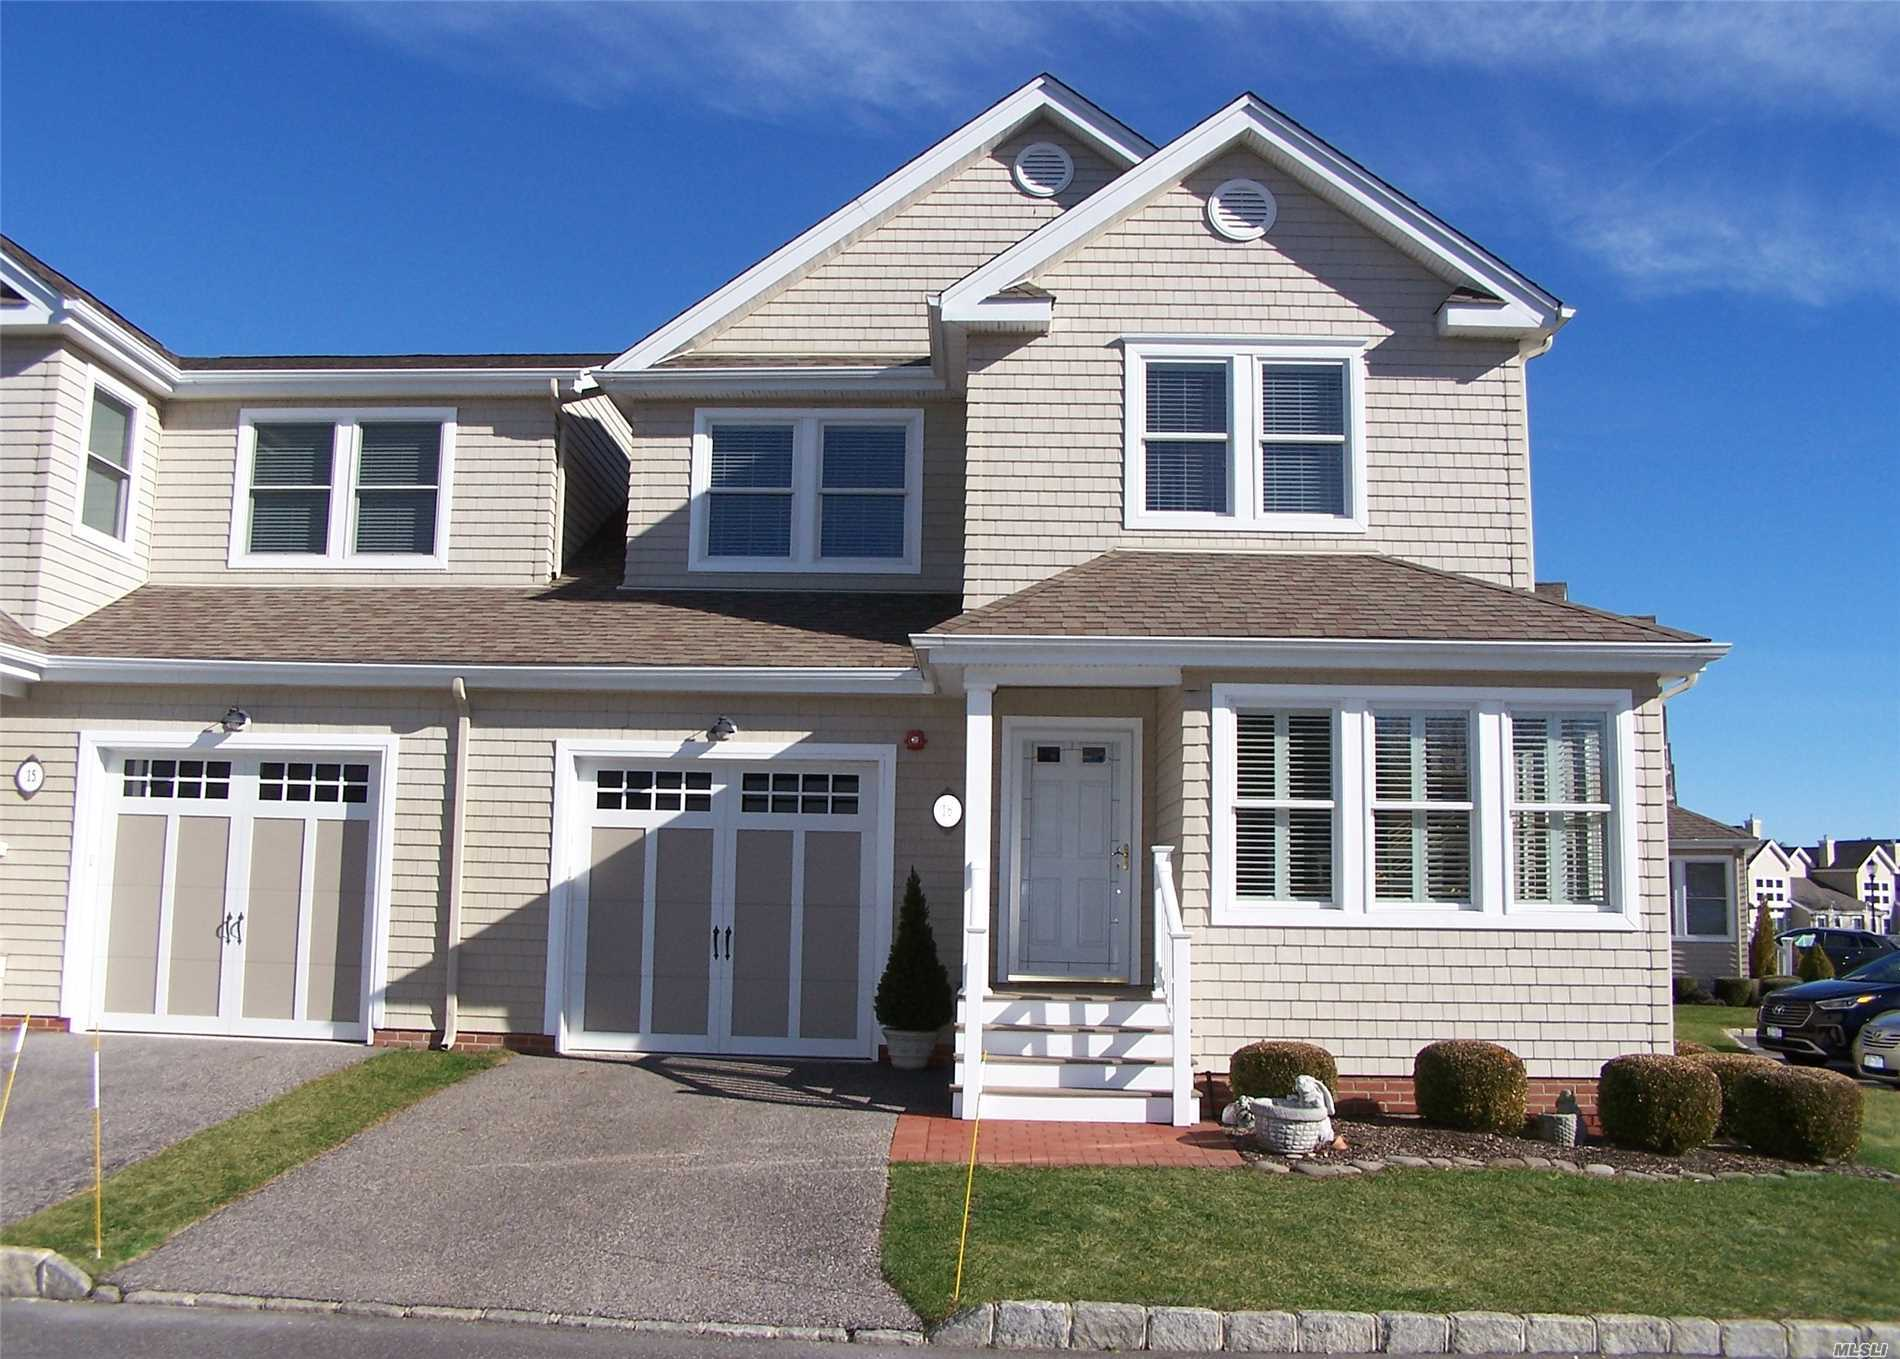 Beautiful 55+Active Community (Completed) This Corner Unit Features Many Bells And Whistle (See Attach) Bright and Open With Lr/Dr 2 Story Volume Ceilings, Trex Deck With View Of Community Pool And Pond. Anderson Windows With Plantation Shutter & Slider, French Doors, Loft Overlooking Living, Hardwood, Full Basement (Storage) Convenient To Beach And Easy Commute